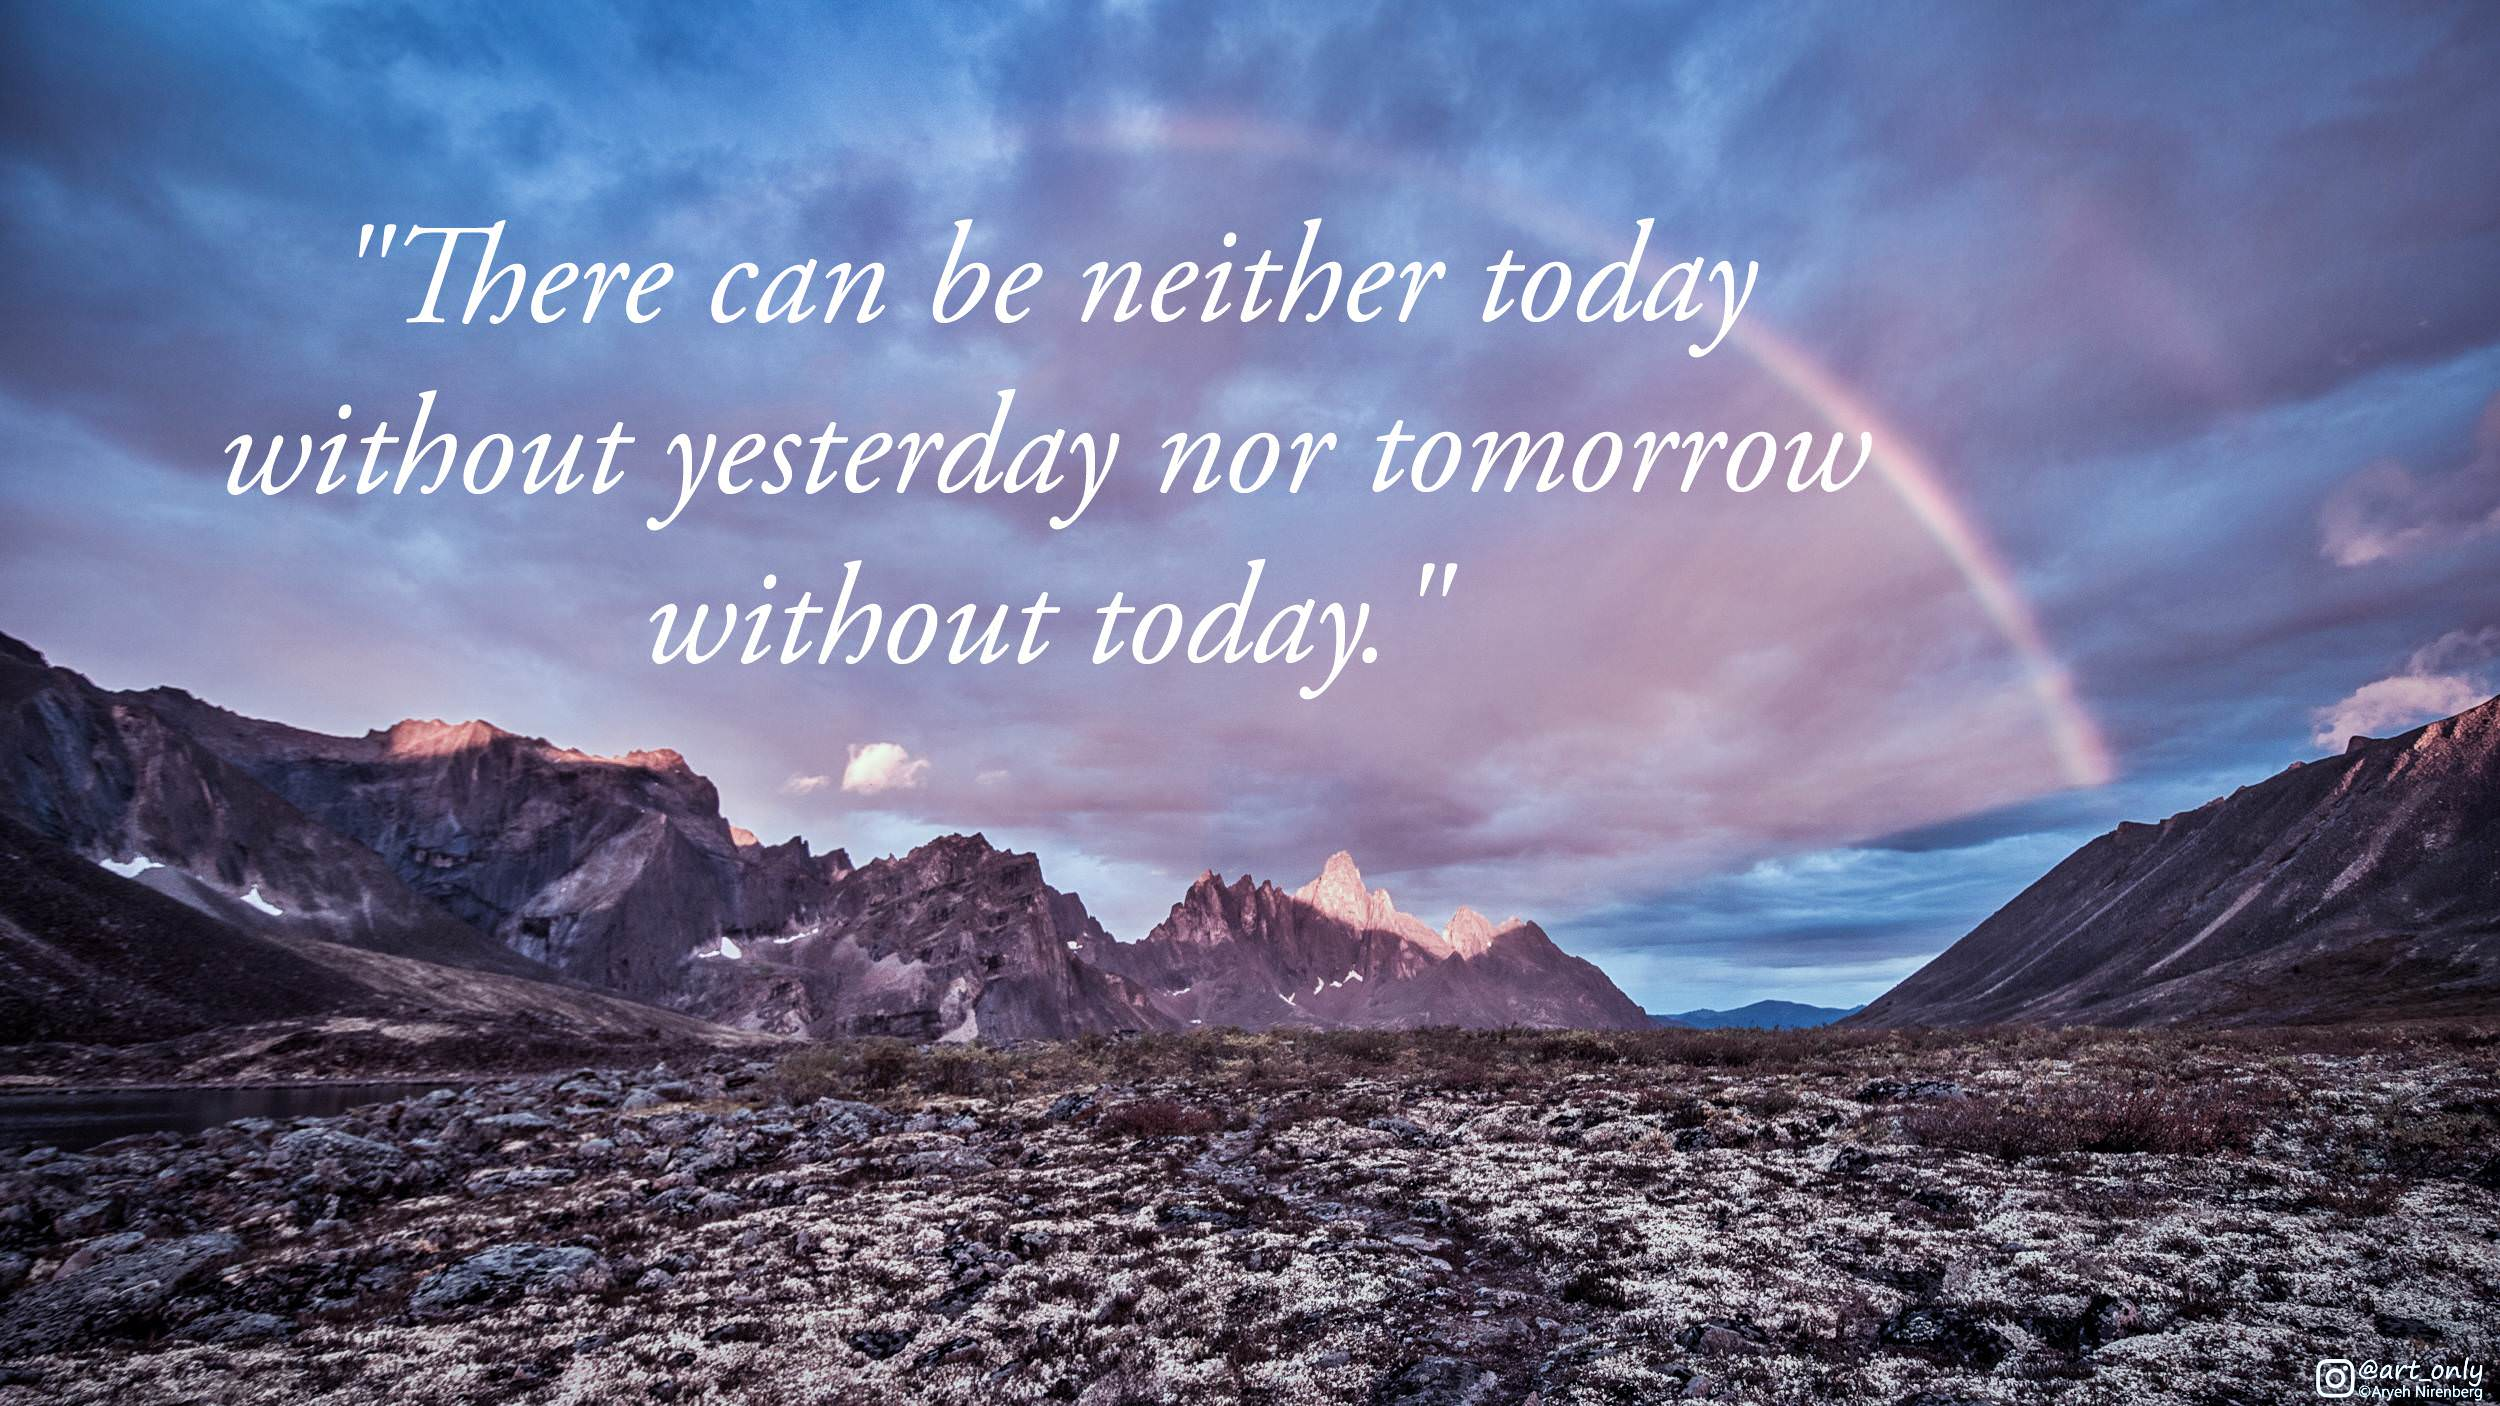 [Image] Always strive to make every day count